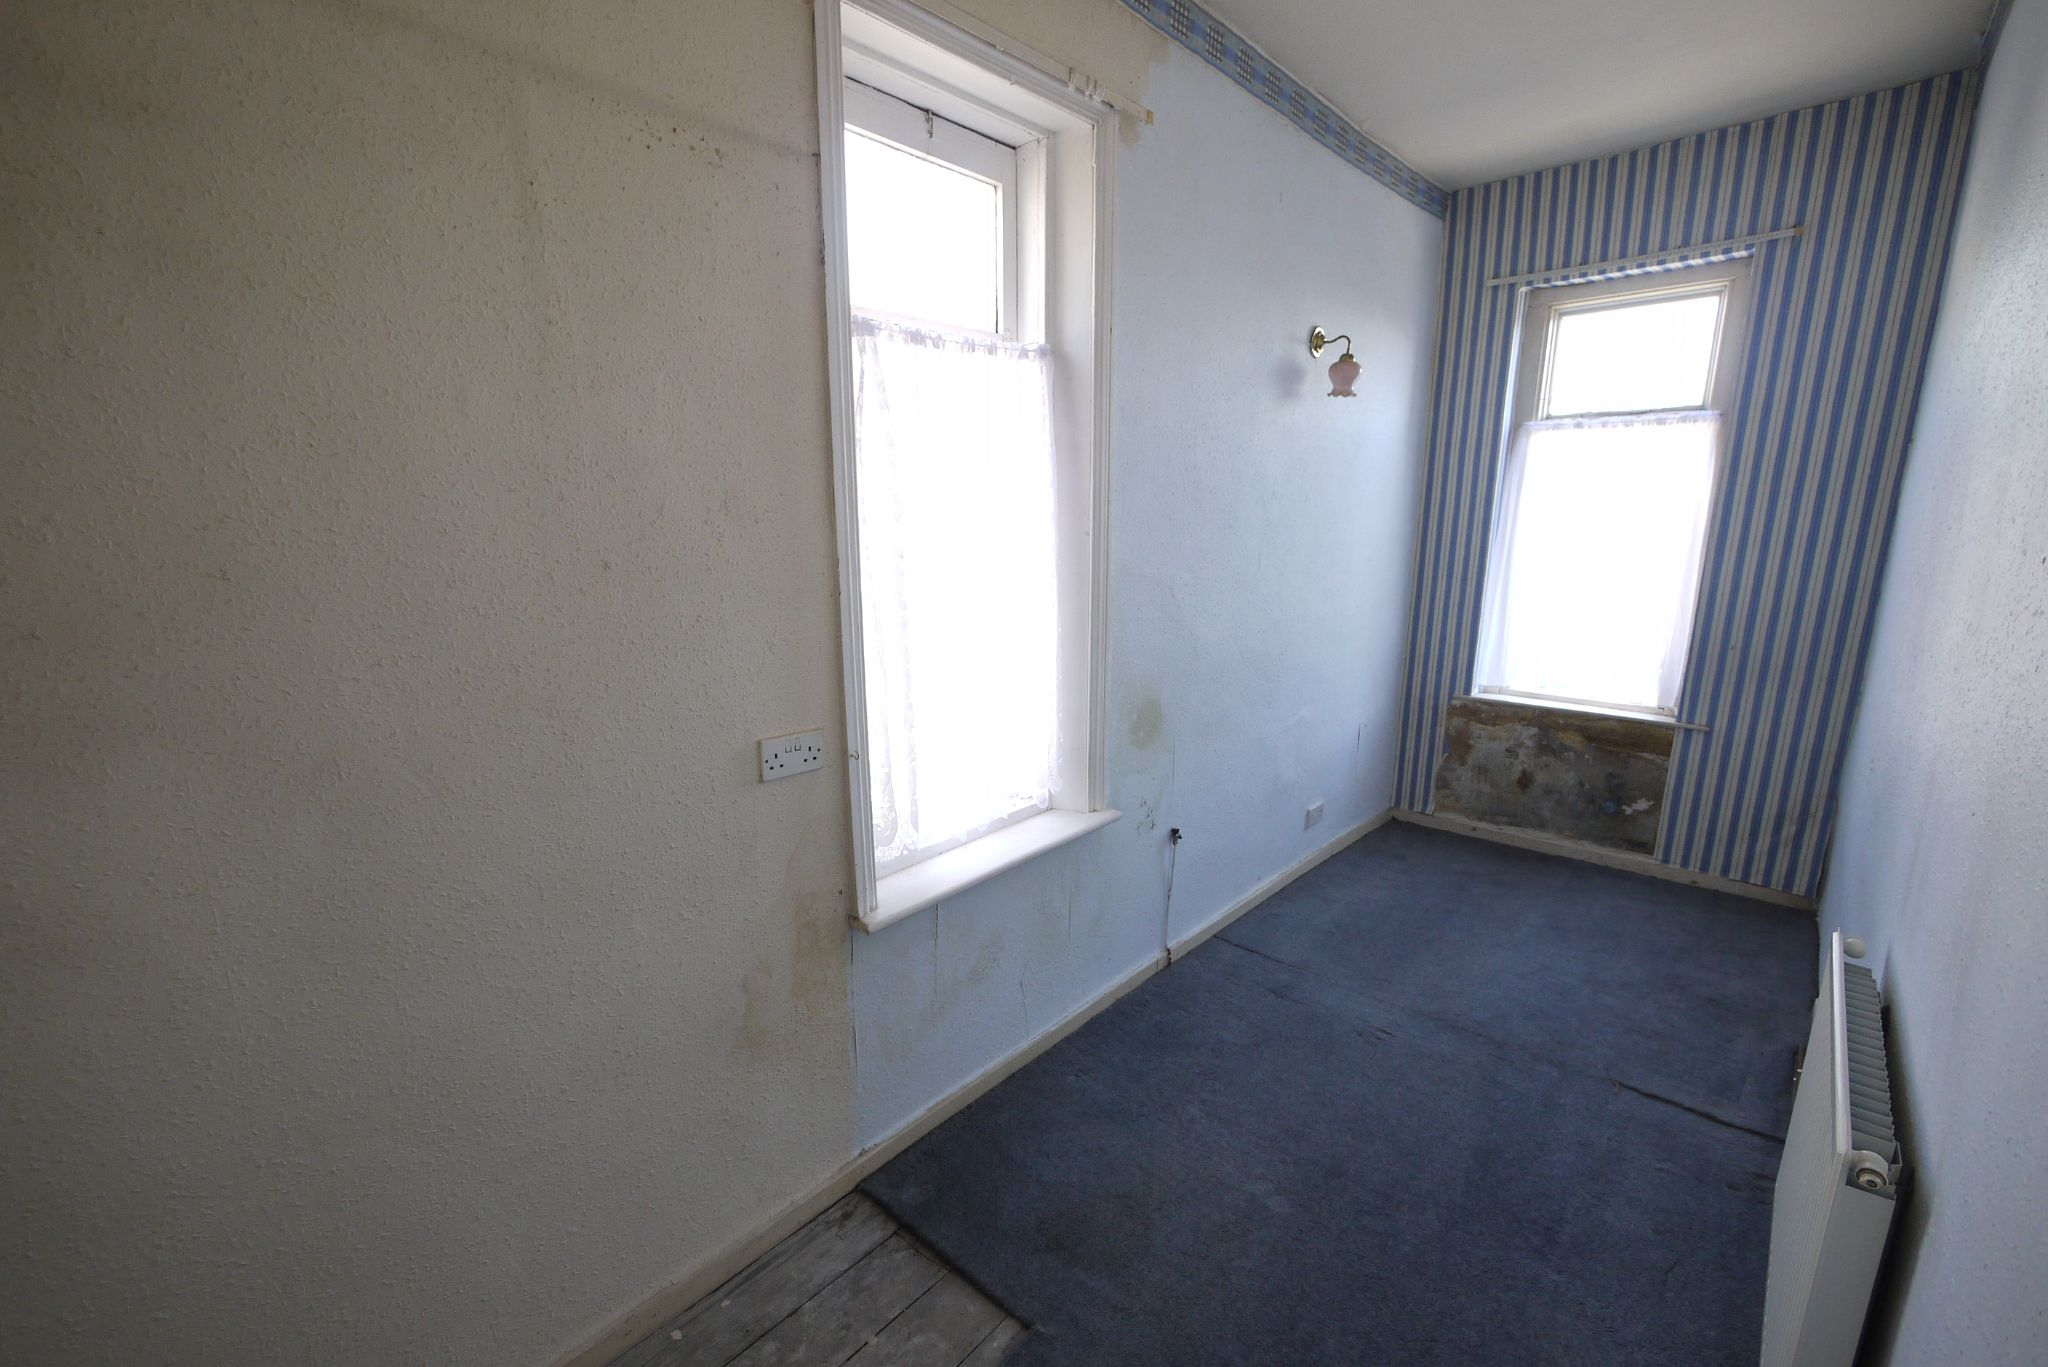 1 bedroom end terraced house SSTC in Brighouse - Bedroom 2.